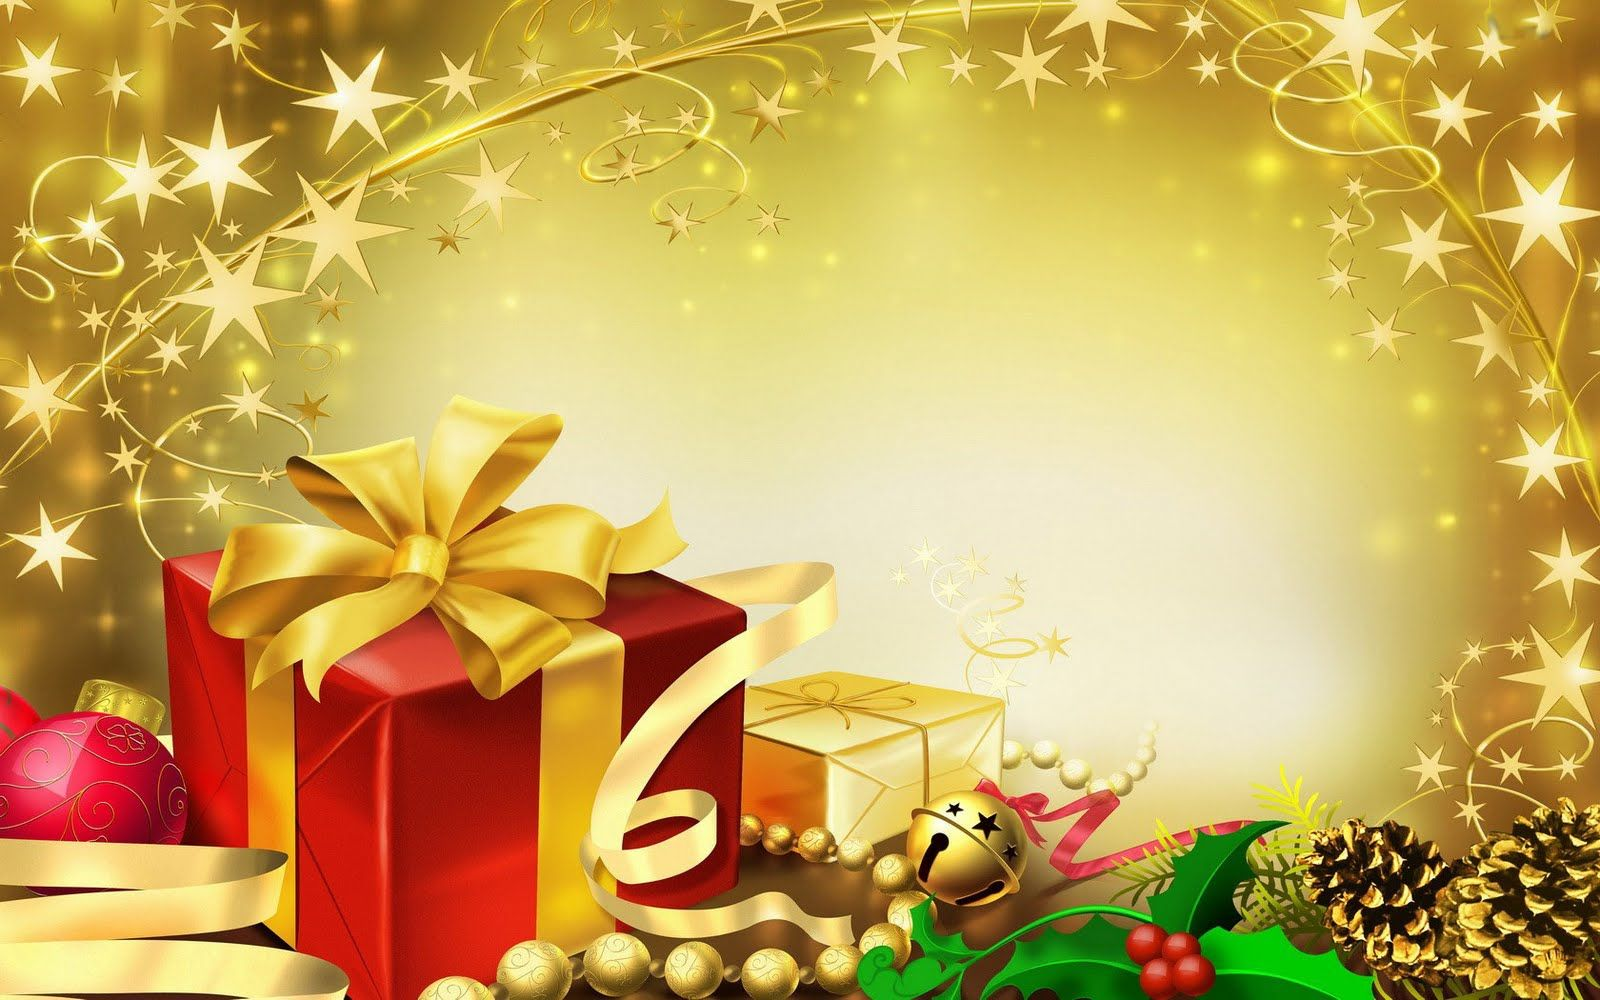 Free Christmas Wallpaper Download All Wallpapers Pinterest